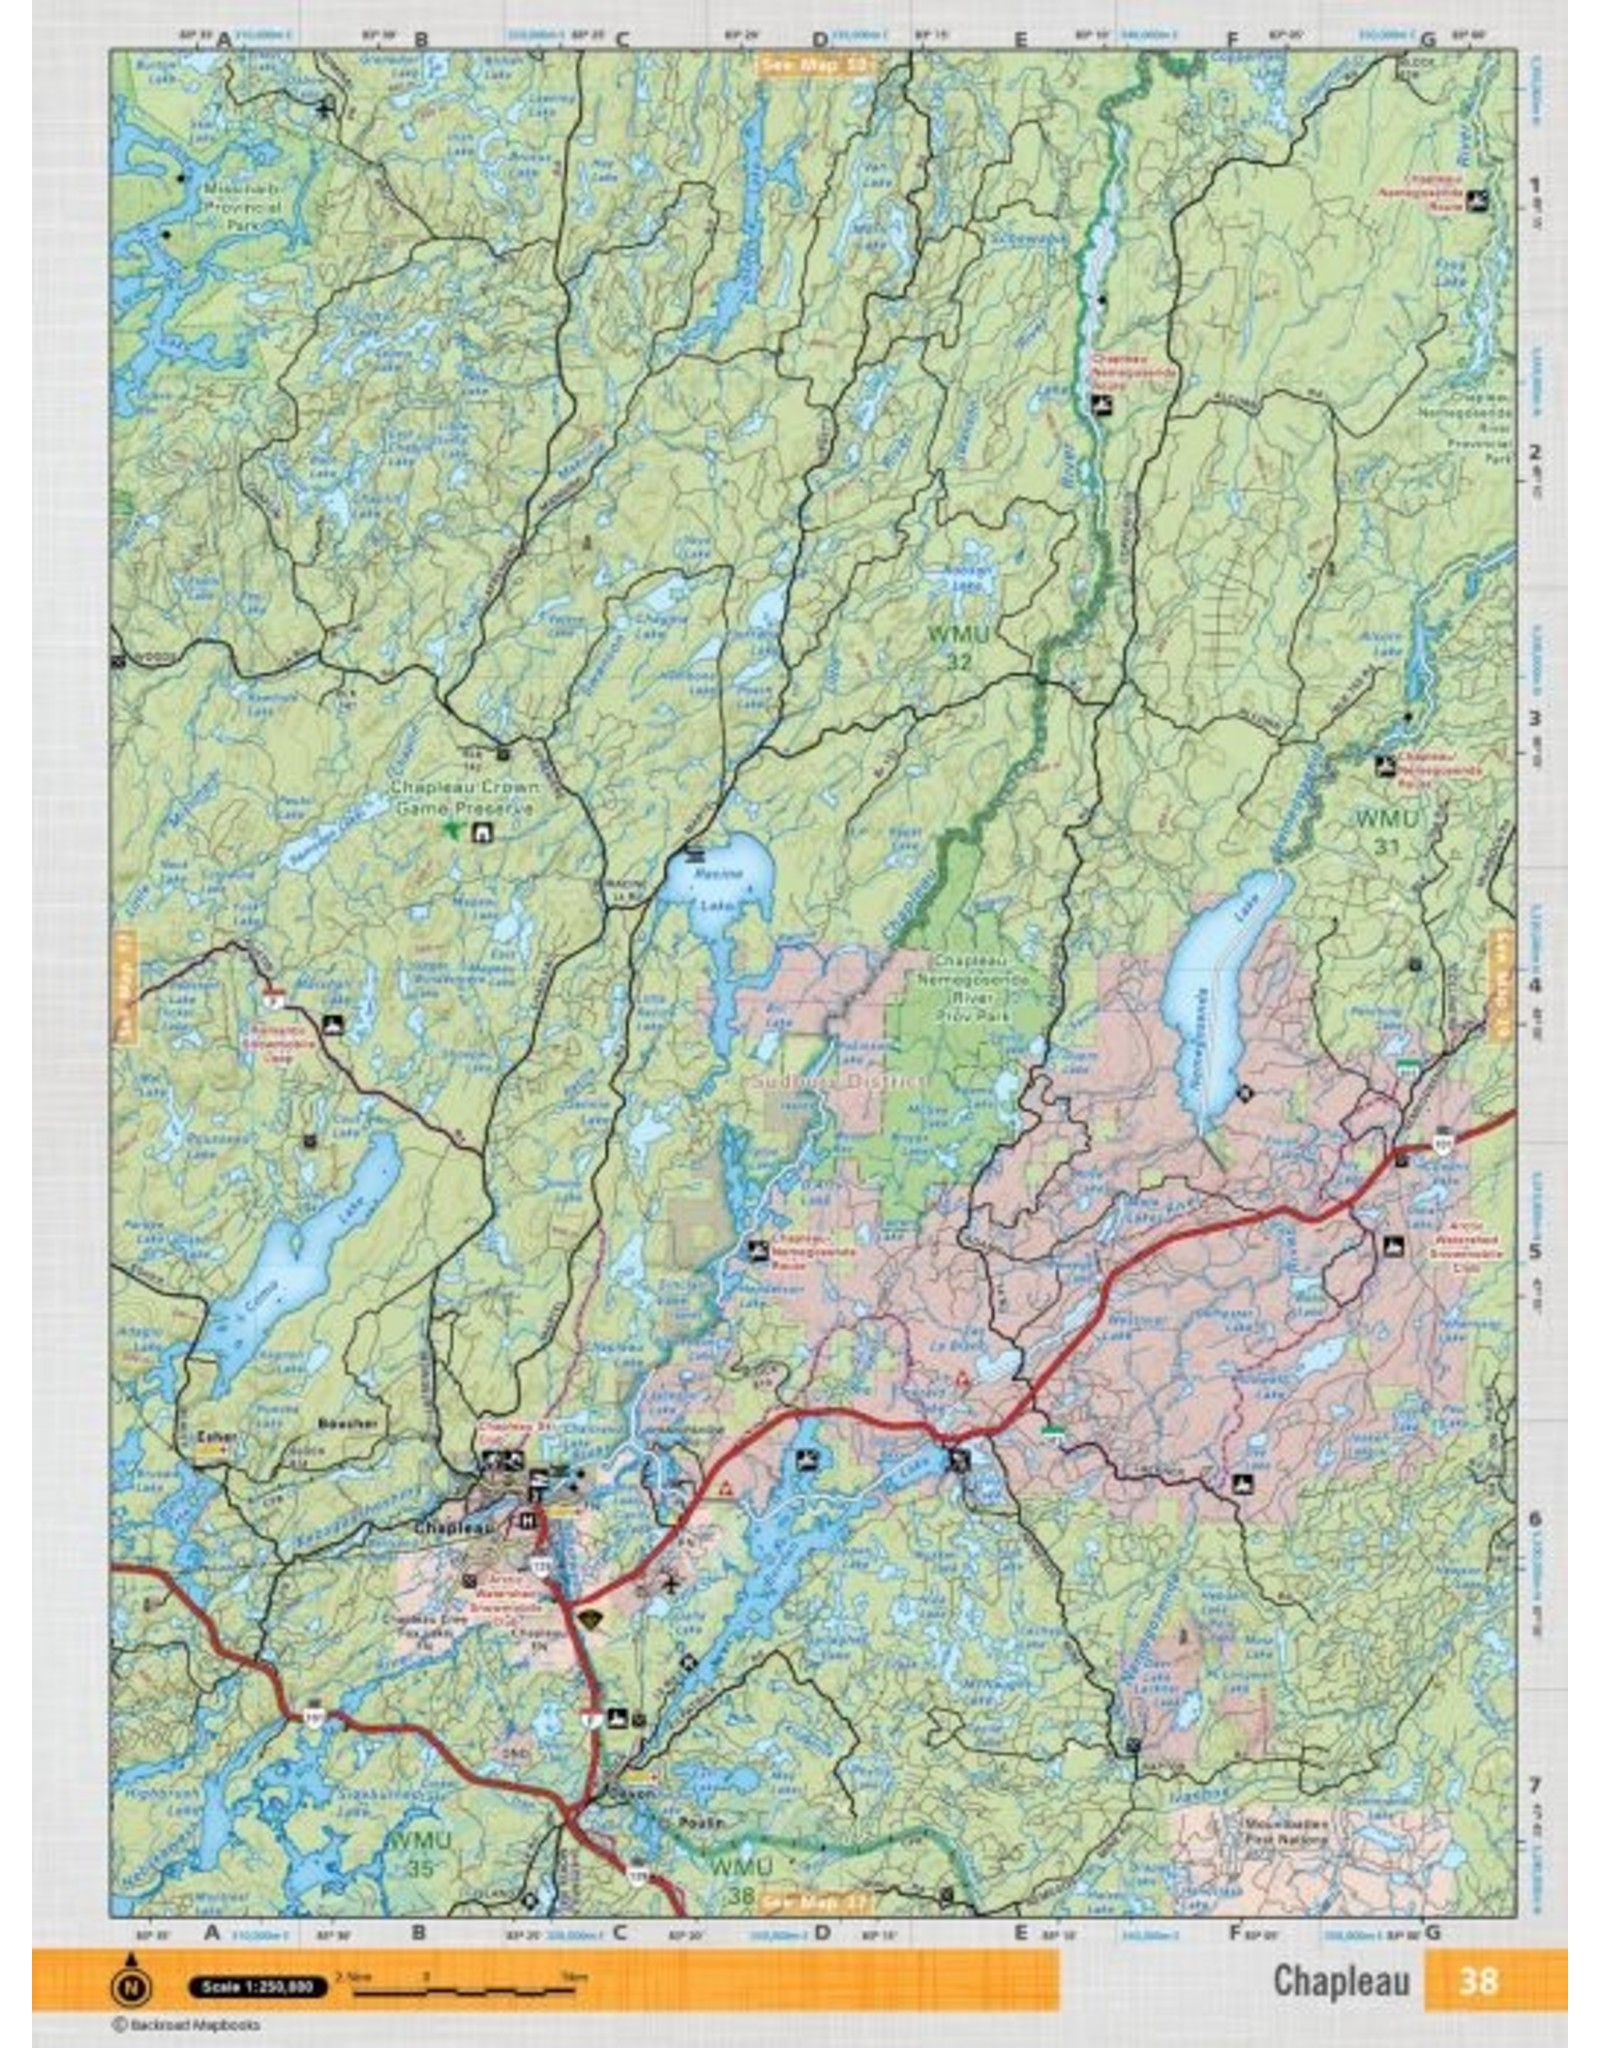 Backroad Mapbooks Backroads Mapbooks ON TOPO MAP WATERPROOF MAP NEON-38 Chapleau